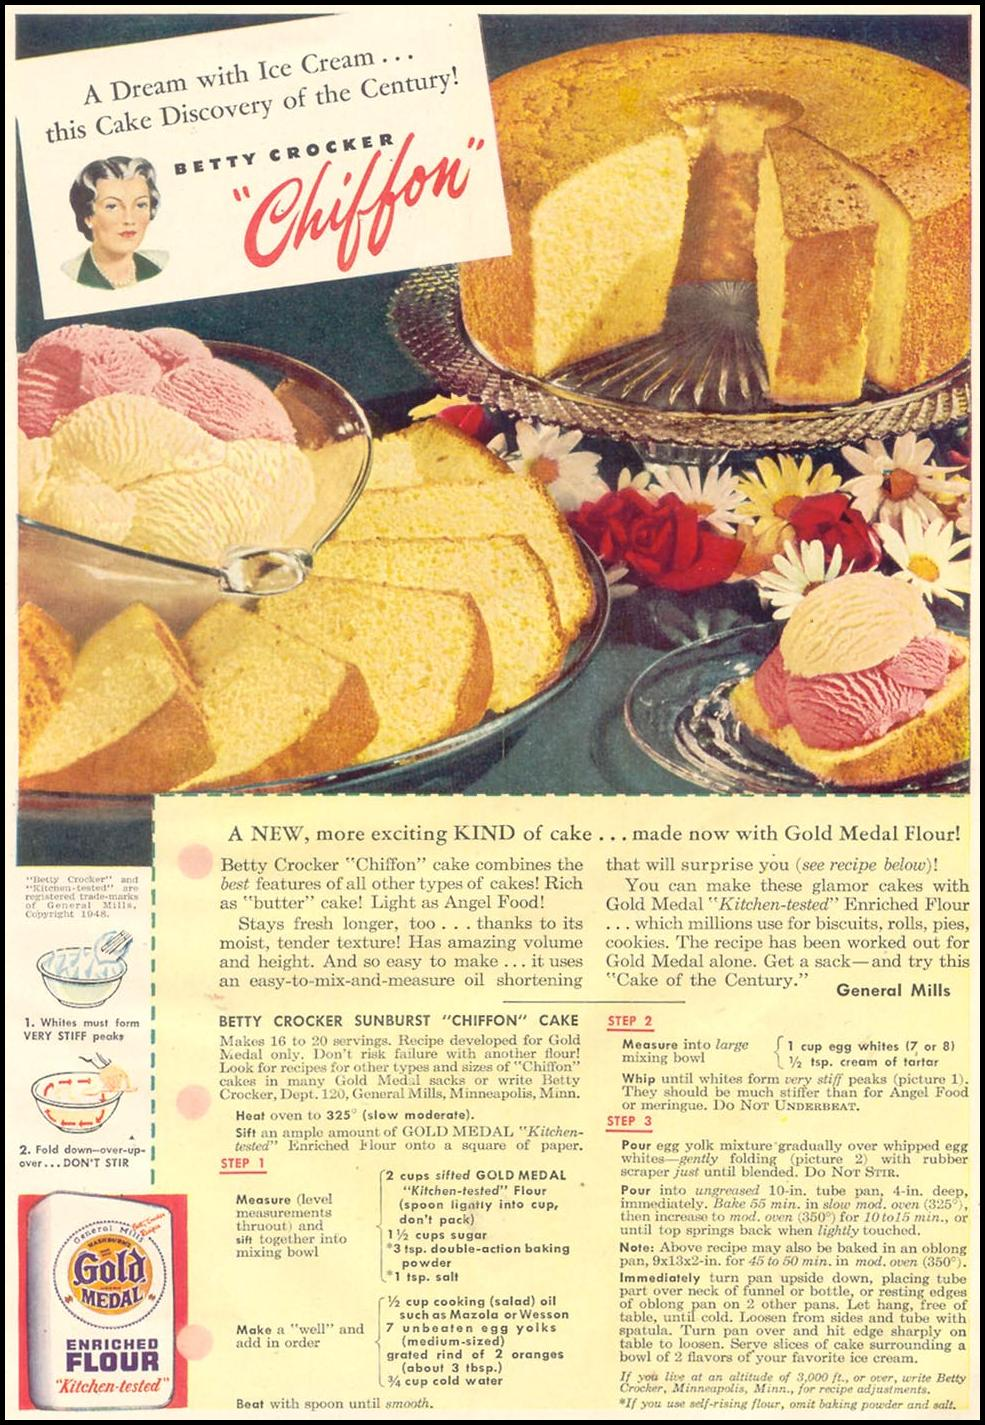 GOLD MEDAL FLOUR GOOD HOUSEKEEPING 07/01/1948 p. 163